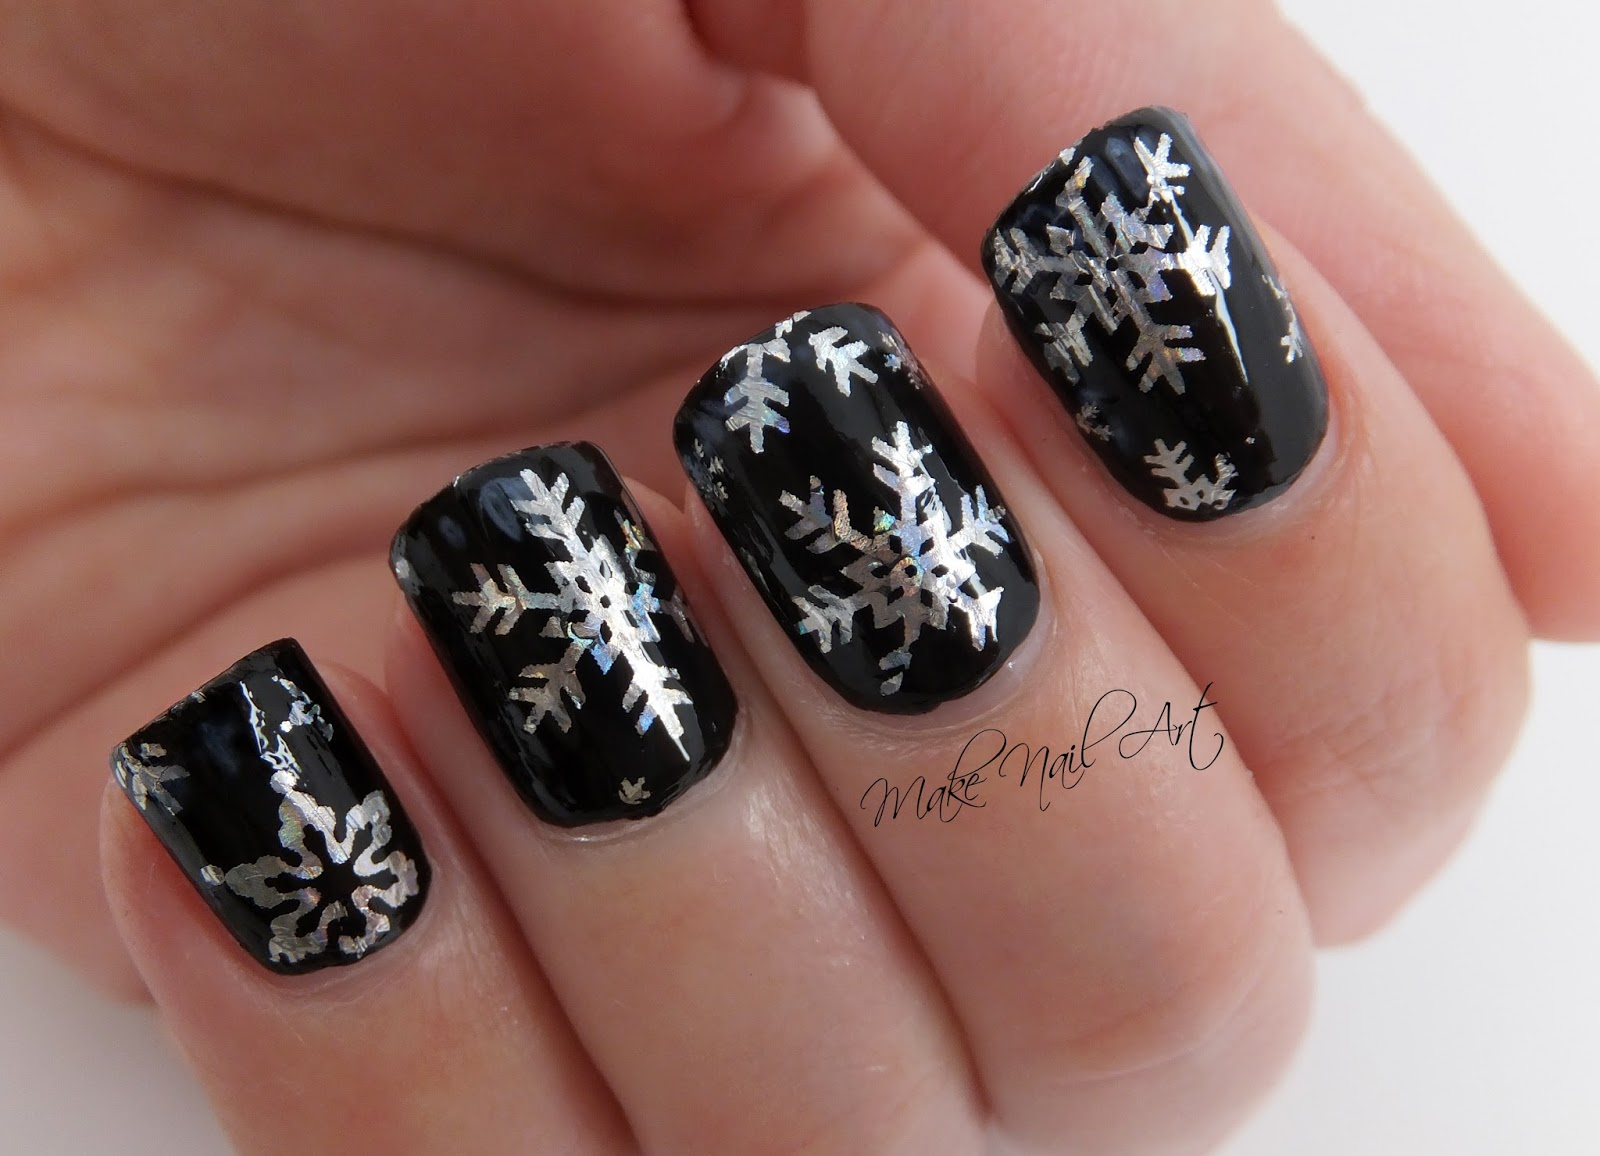 Make nail art holographic snowflakes foil nail art design when the glue dries apply the foil on the nail and press with your finger to transfer the snowflakes finish with a water based top coat prinsesfo Image collections